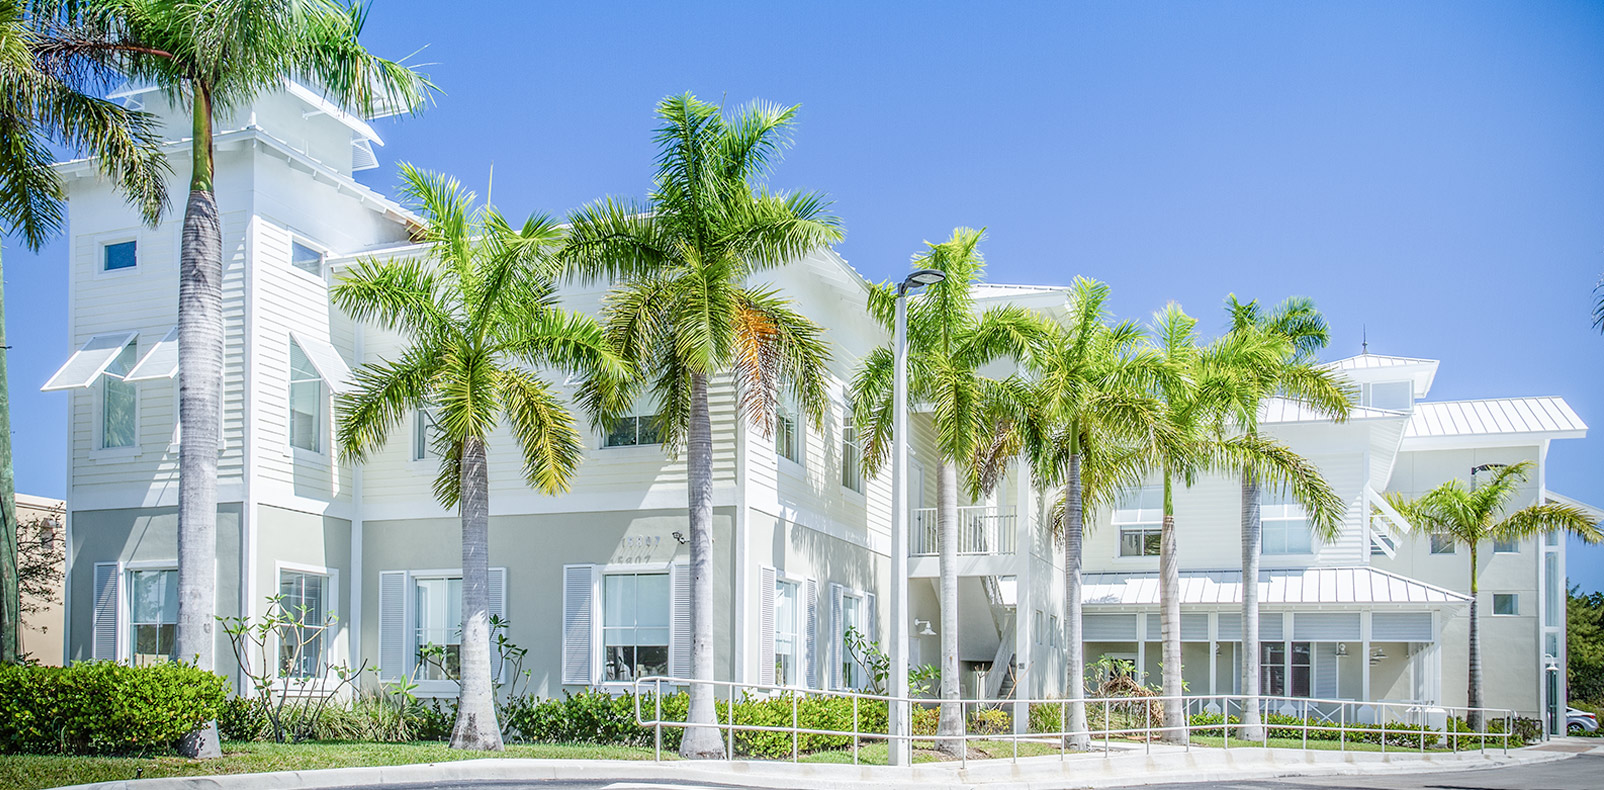 <h1 class='over-slide-heading'>MODERN OFFICES</h1><span class='over-slide-subheading hide-for-small'>NORTH MIAMI BEACH LEASING AVAILABLE</span>